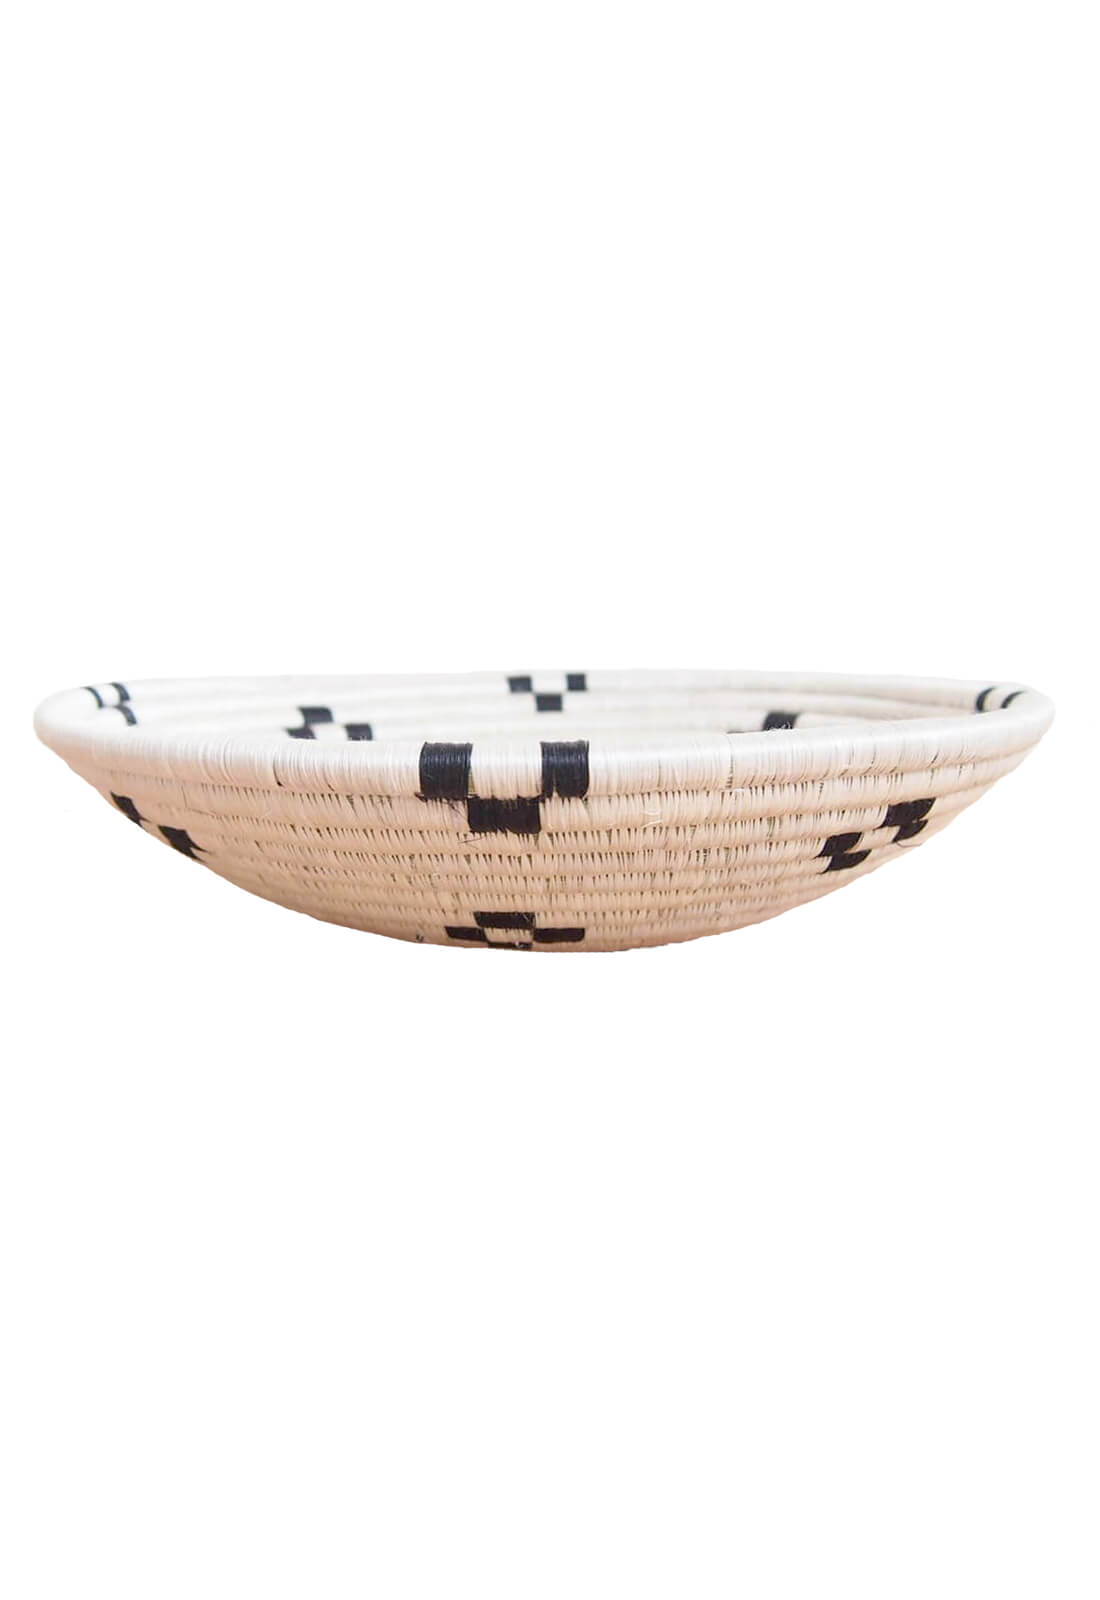 Hand Woven Maraba Basket - White and Black, Small